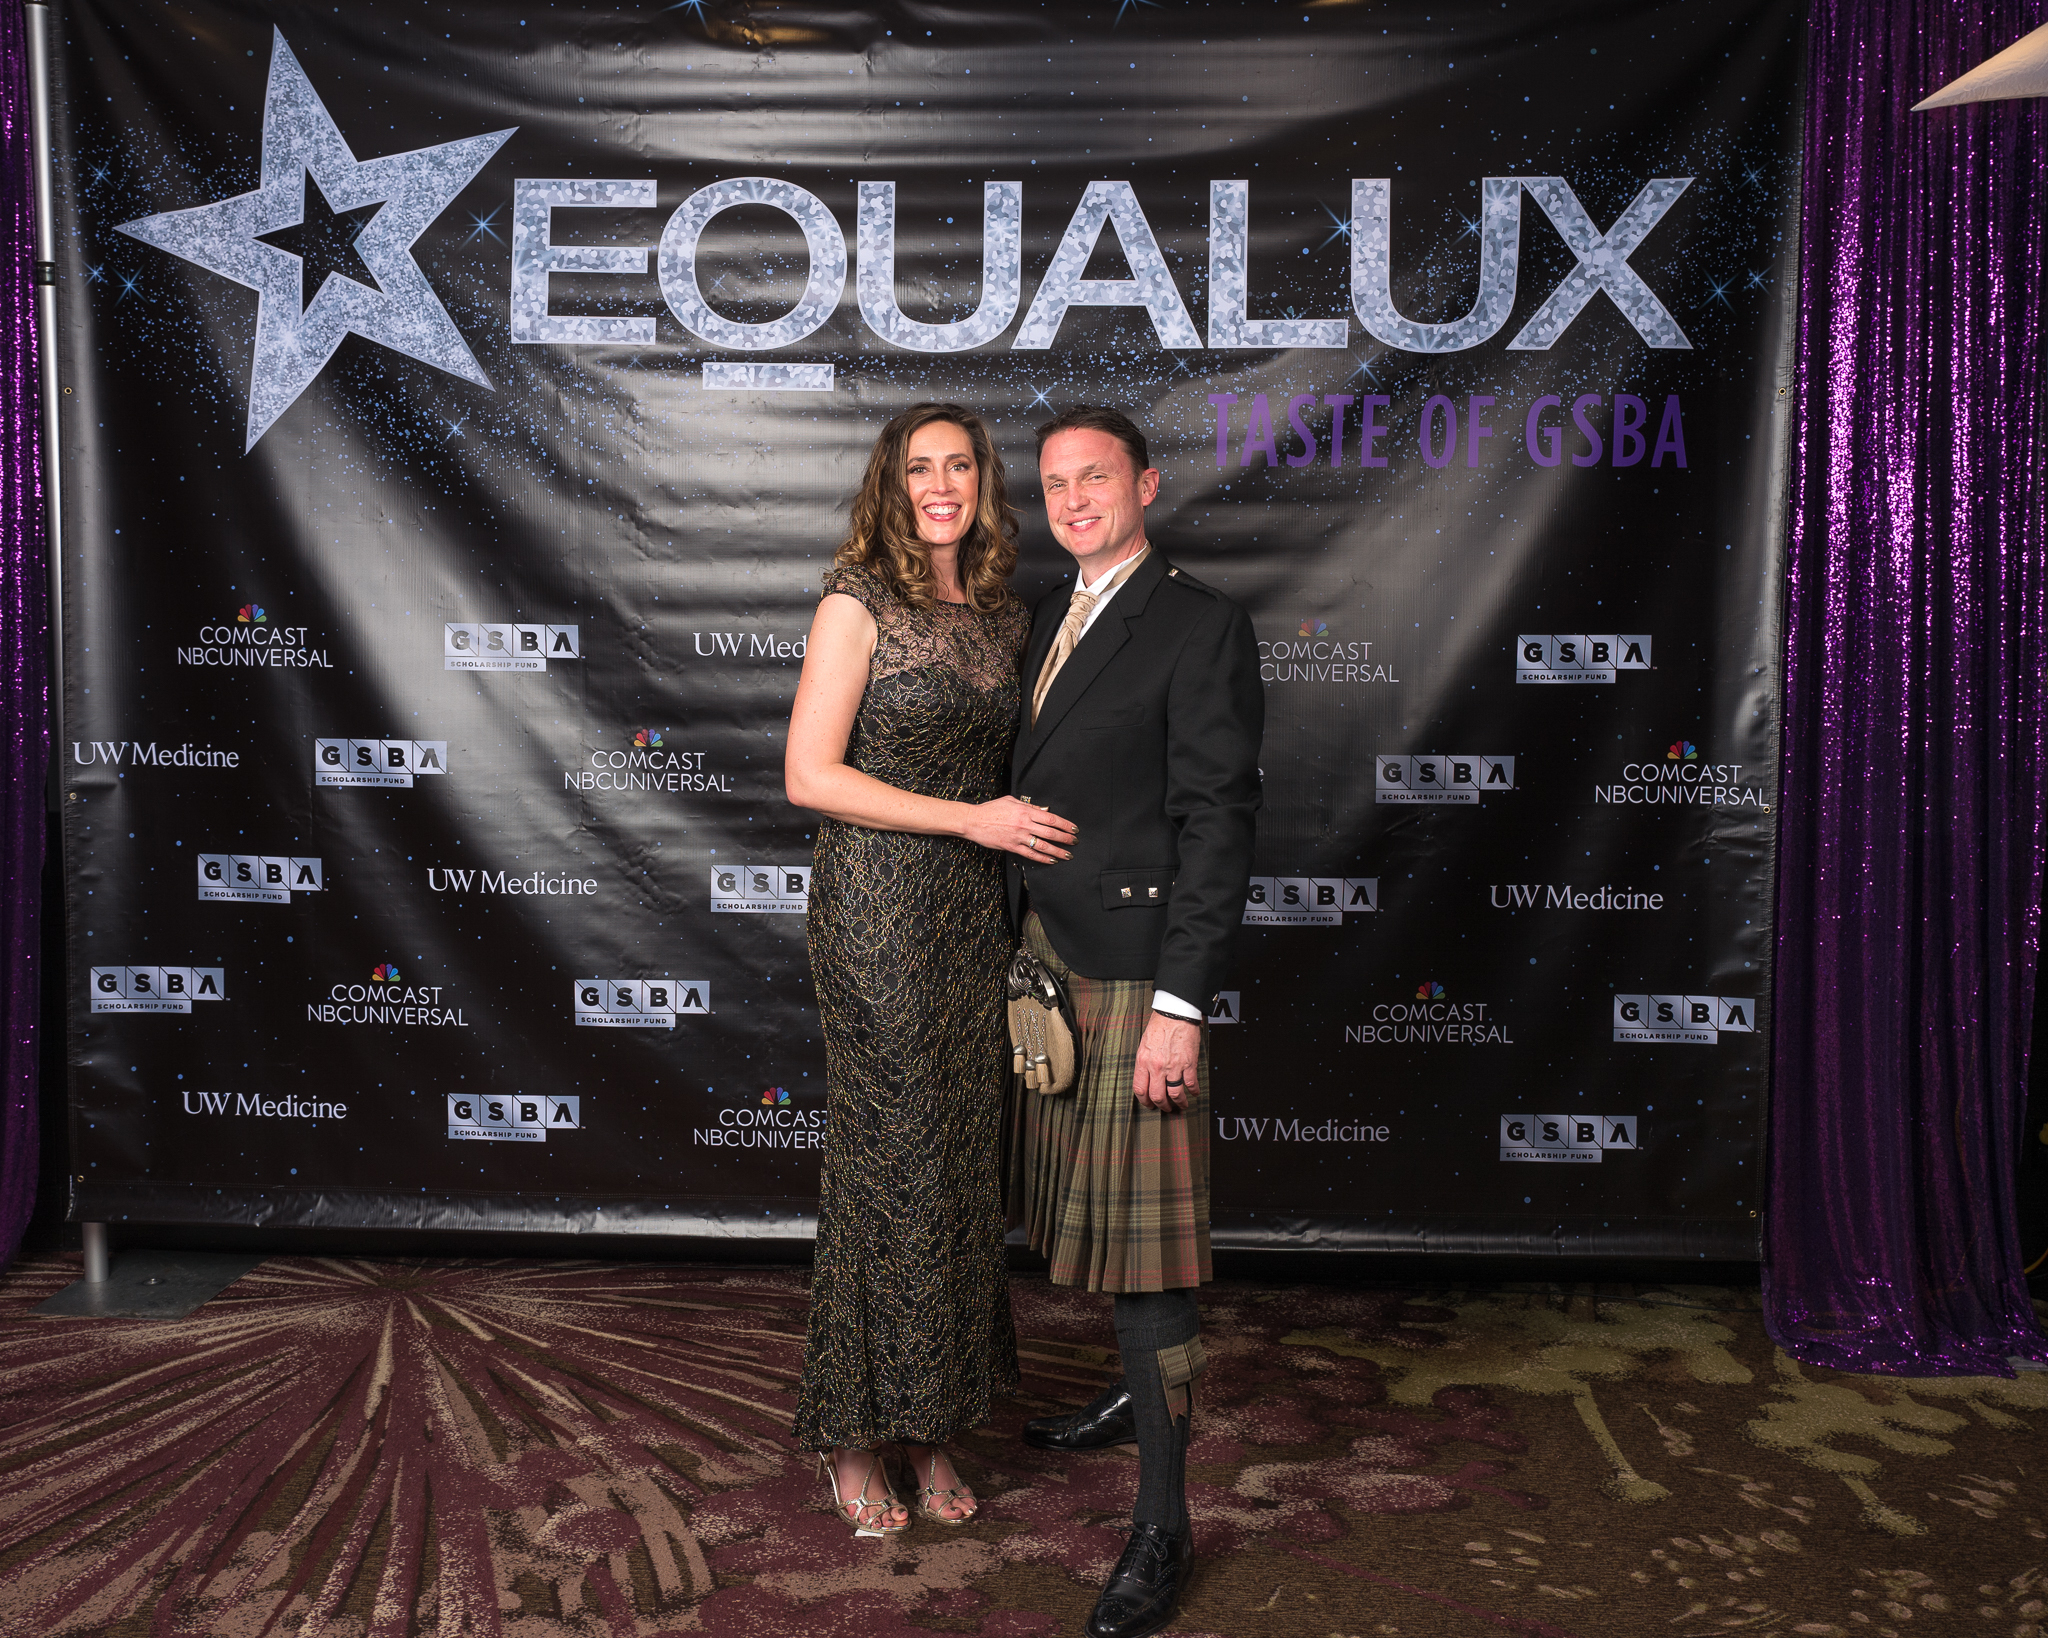 111718_GSBA EQUALUX at The Westin Seattle (Credit- Nate Gowdy)-187.jpg